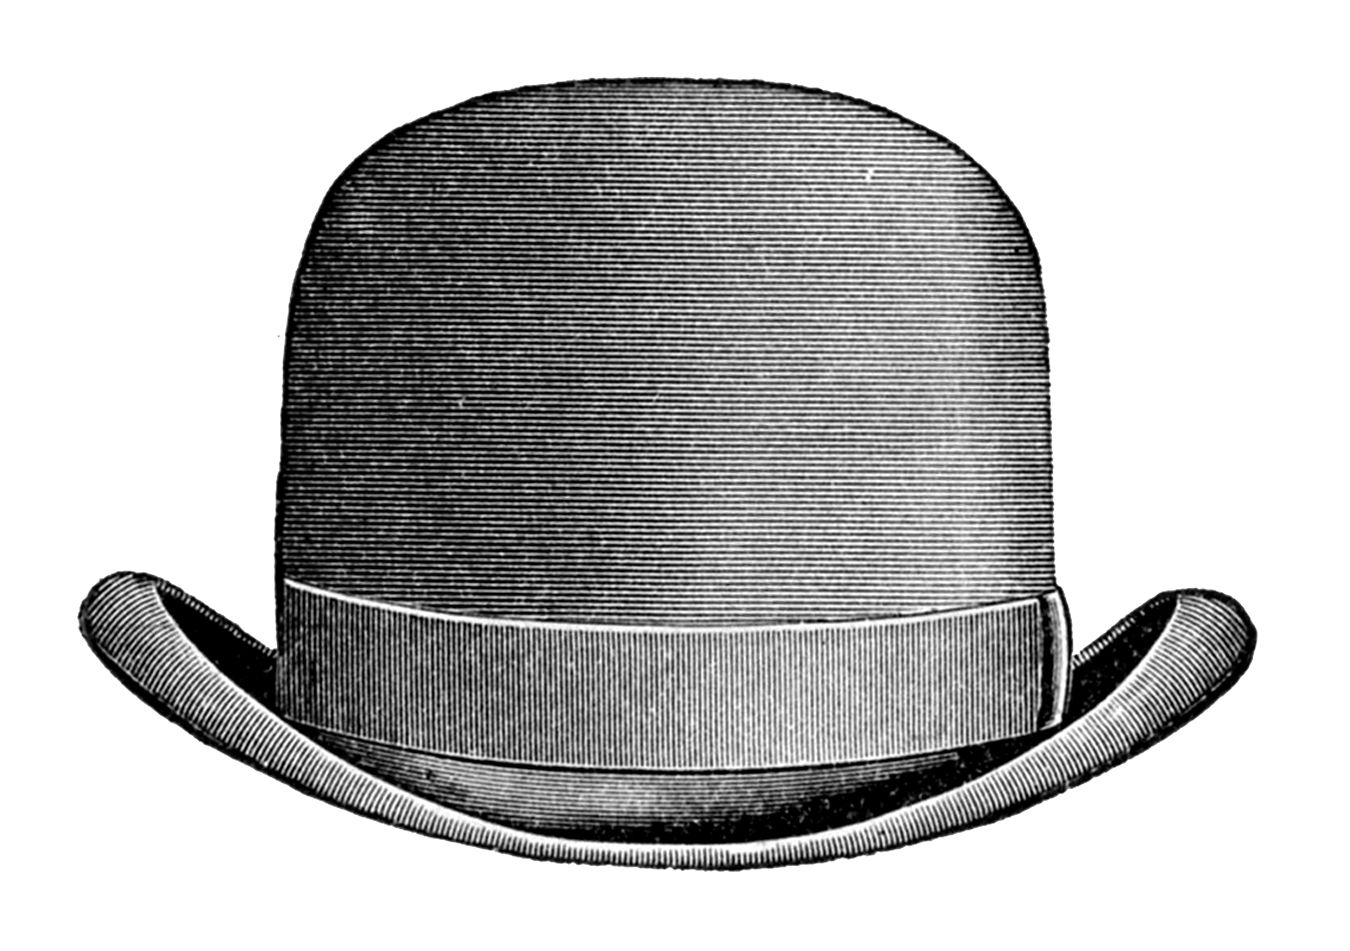 Steampunk clipart hat. Bowler image grafxquest free